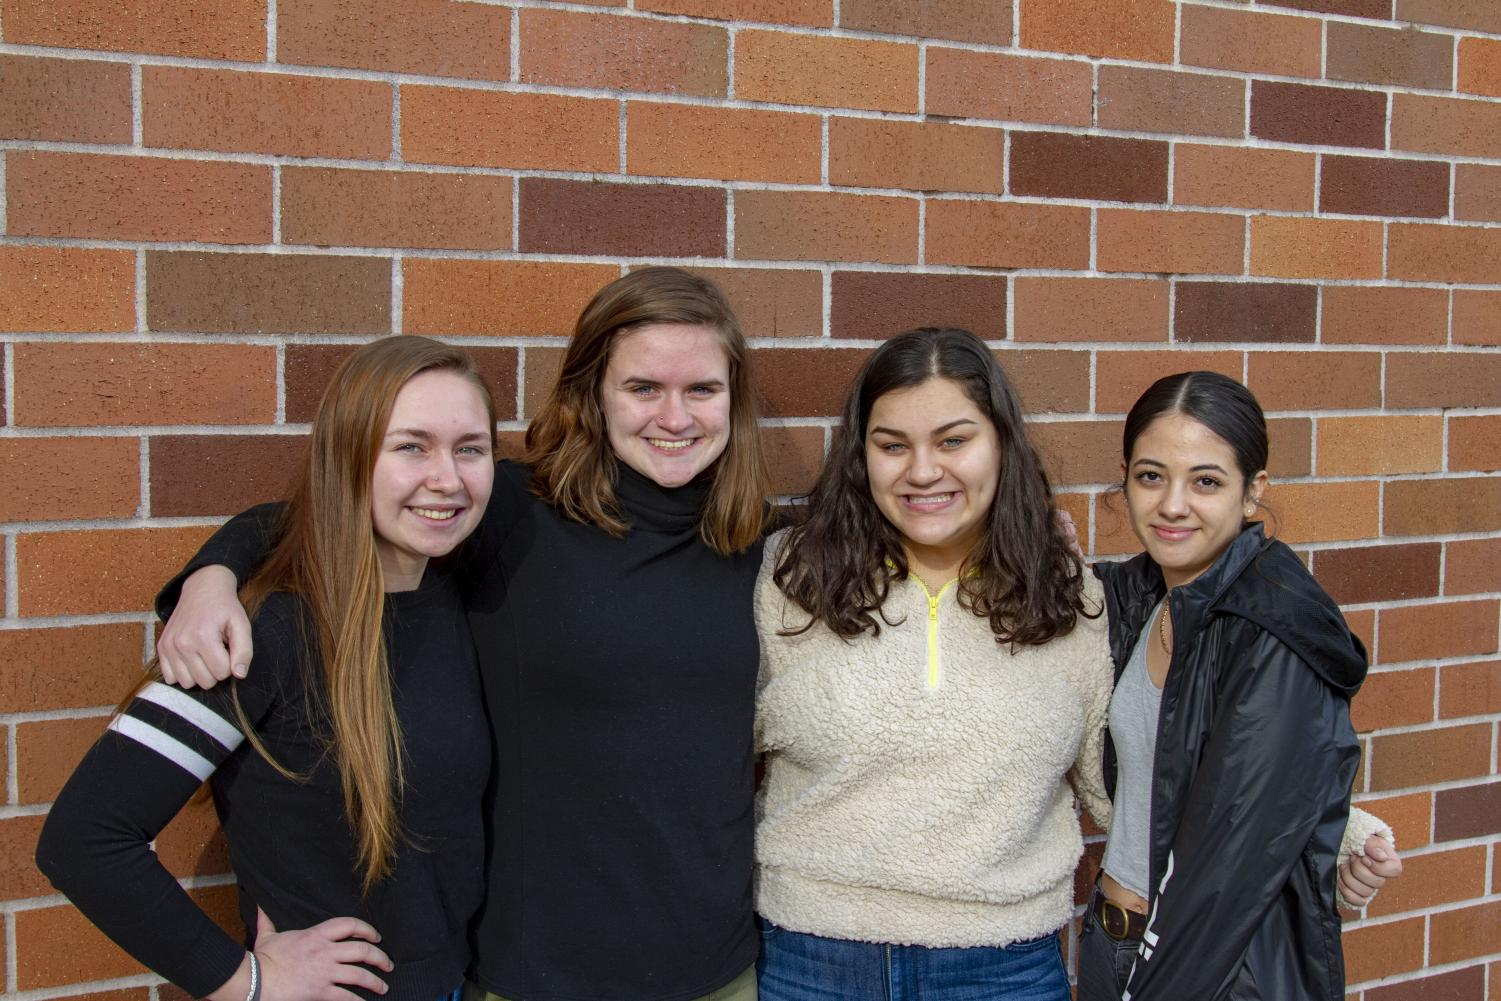 Seniors Kiriahna Edeline, Madison York, Dani Rinz, and Ana Lopez Bonilla were among those who expressed a desire for a change in the dress code policy on nose piercings.